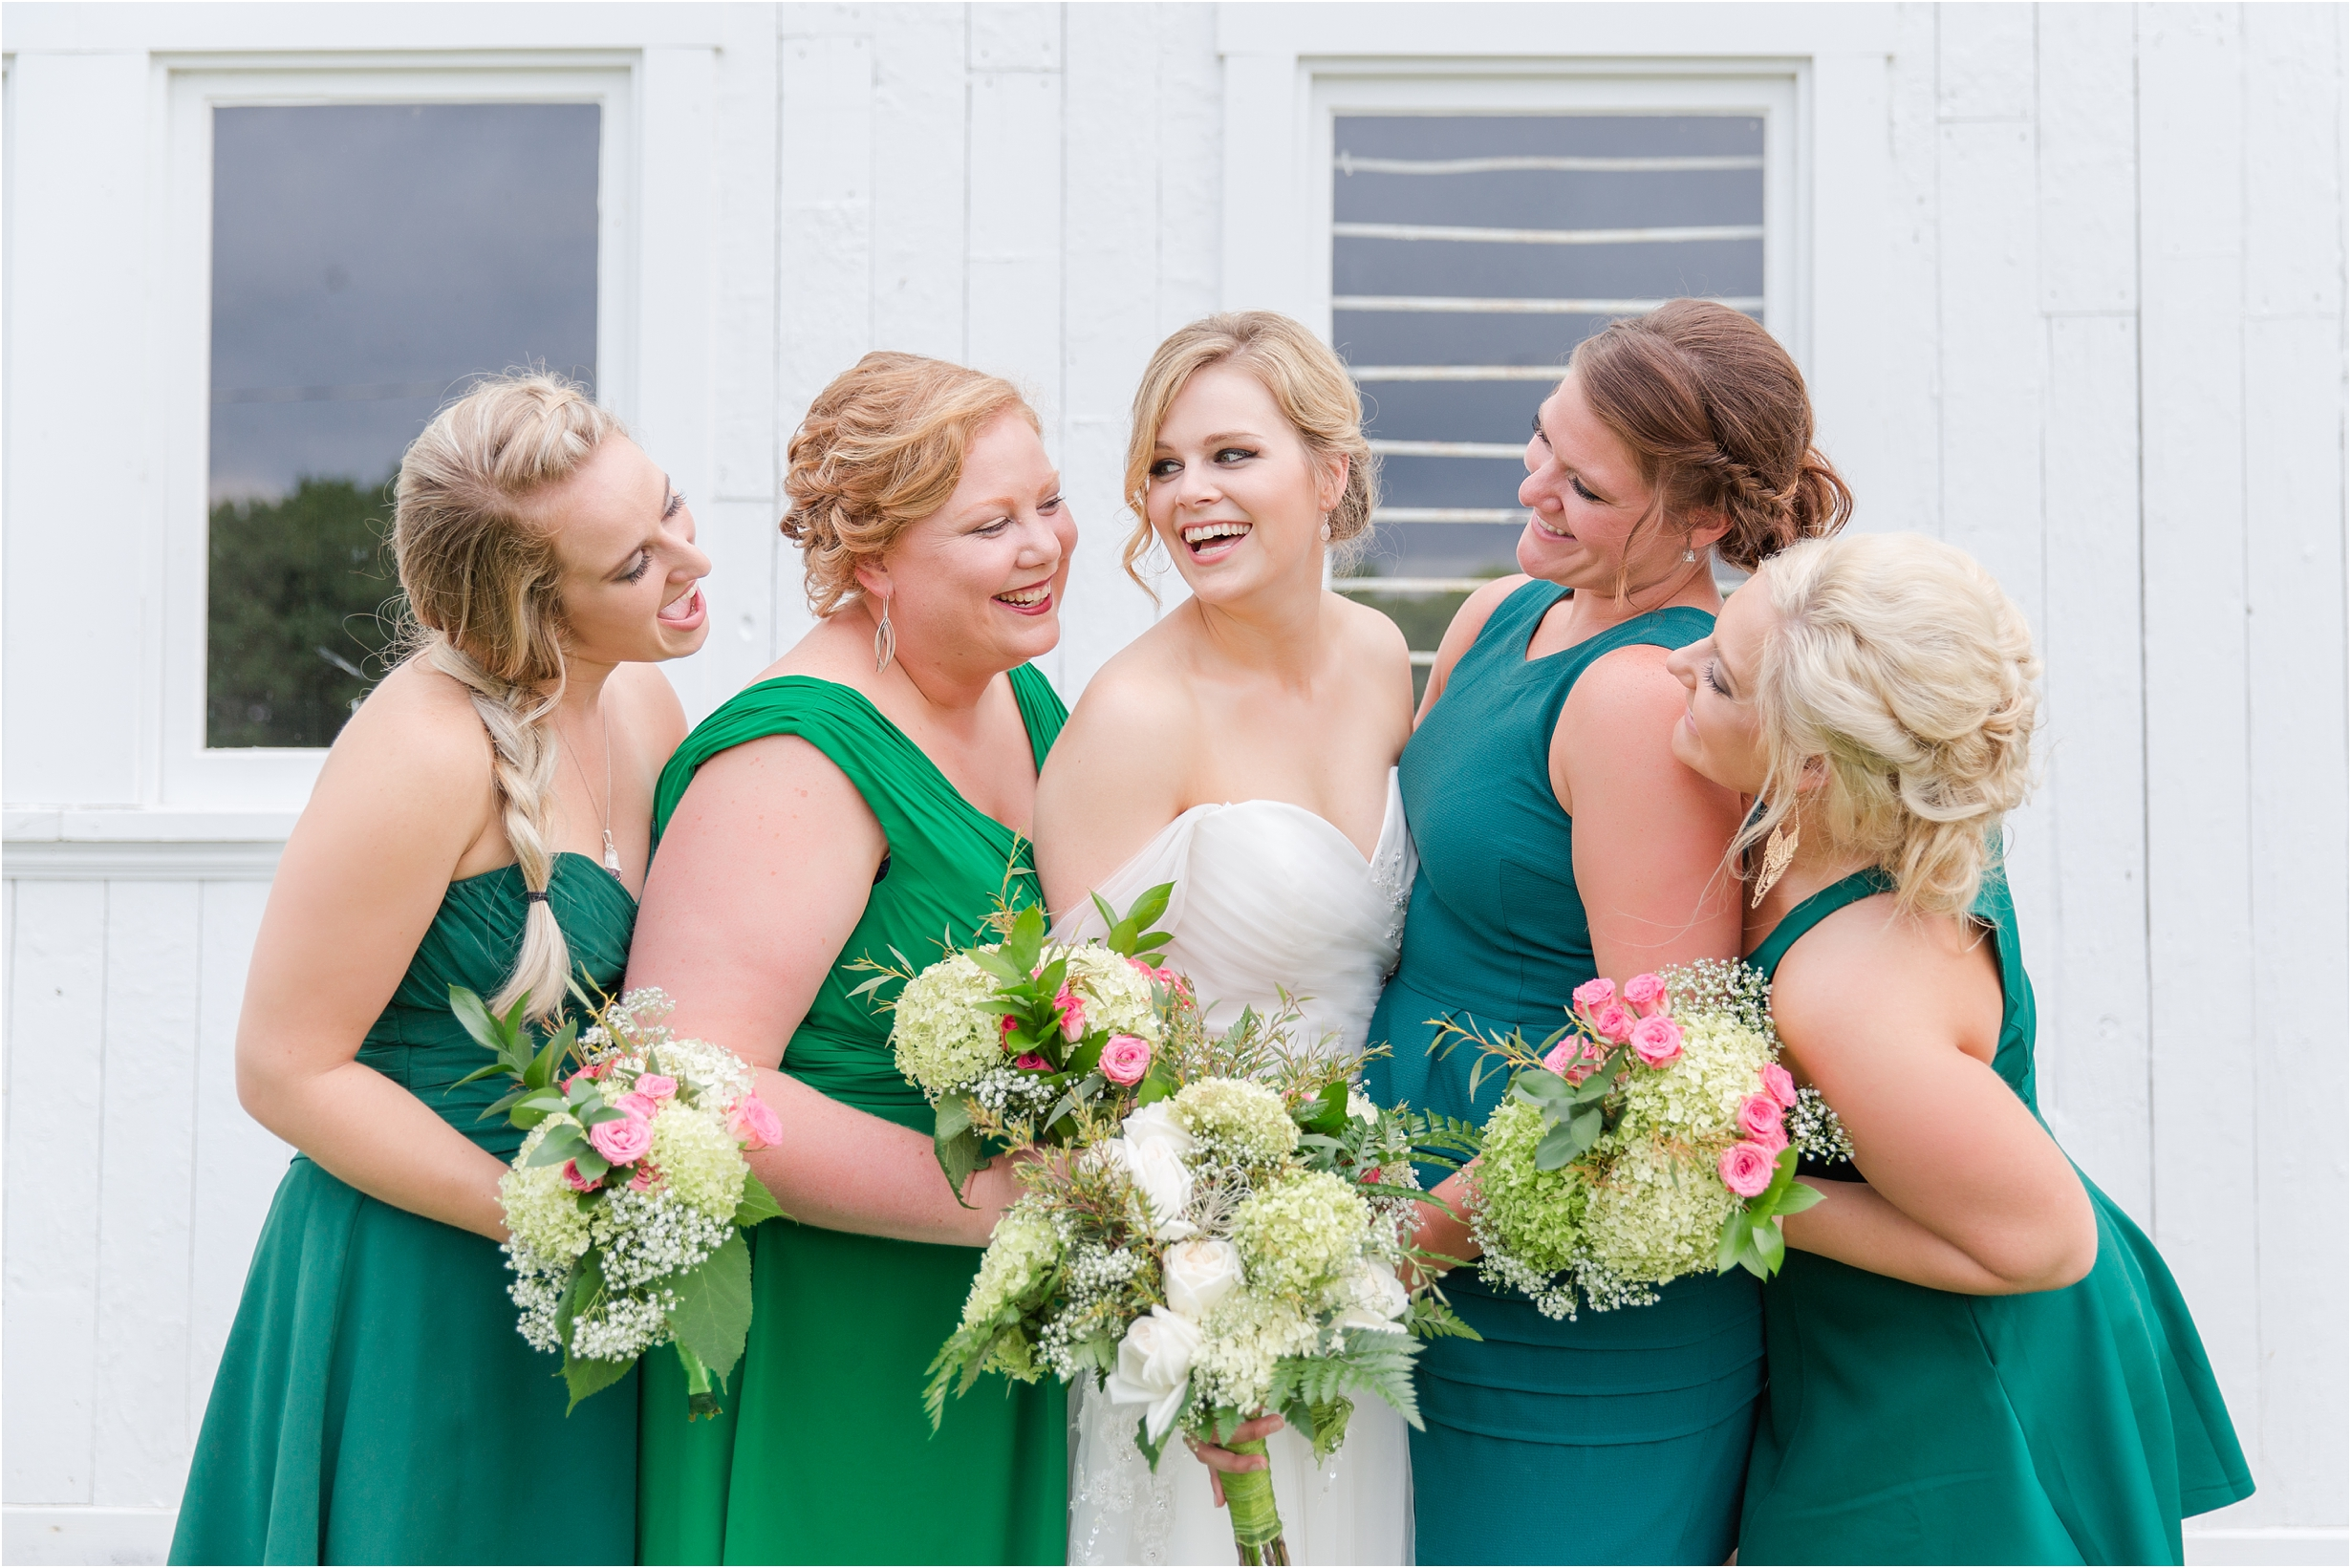 best-of-2016-wedding-photos-with-courtney-carolyn-photography-romantic-timeless-candid-wedding-photographer-in-detroit-mi_0035.jpg